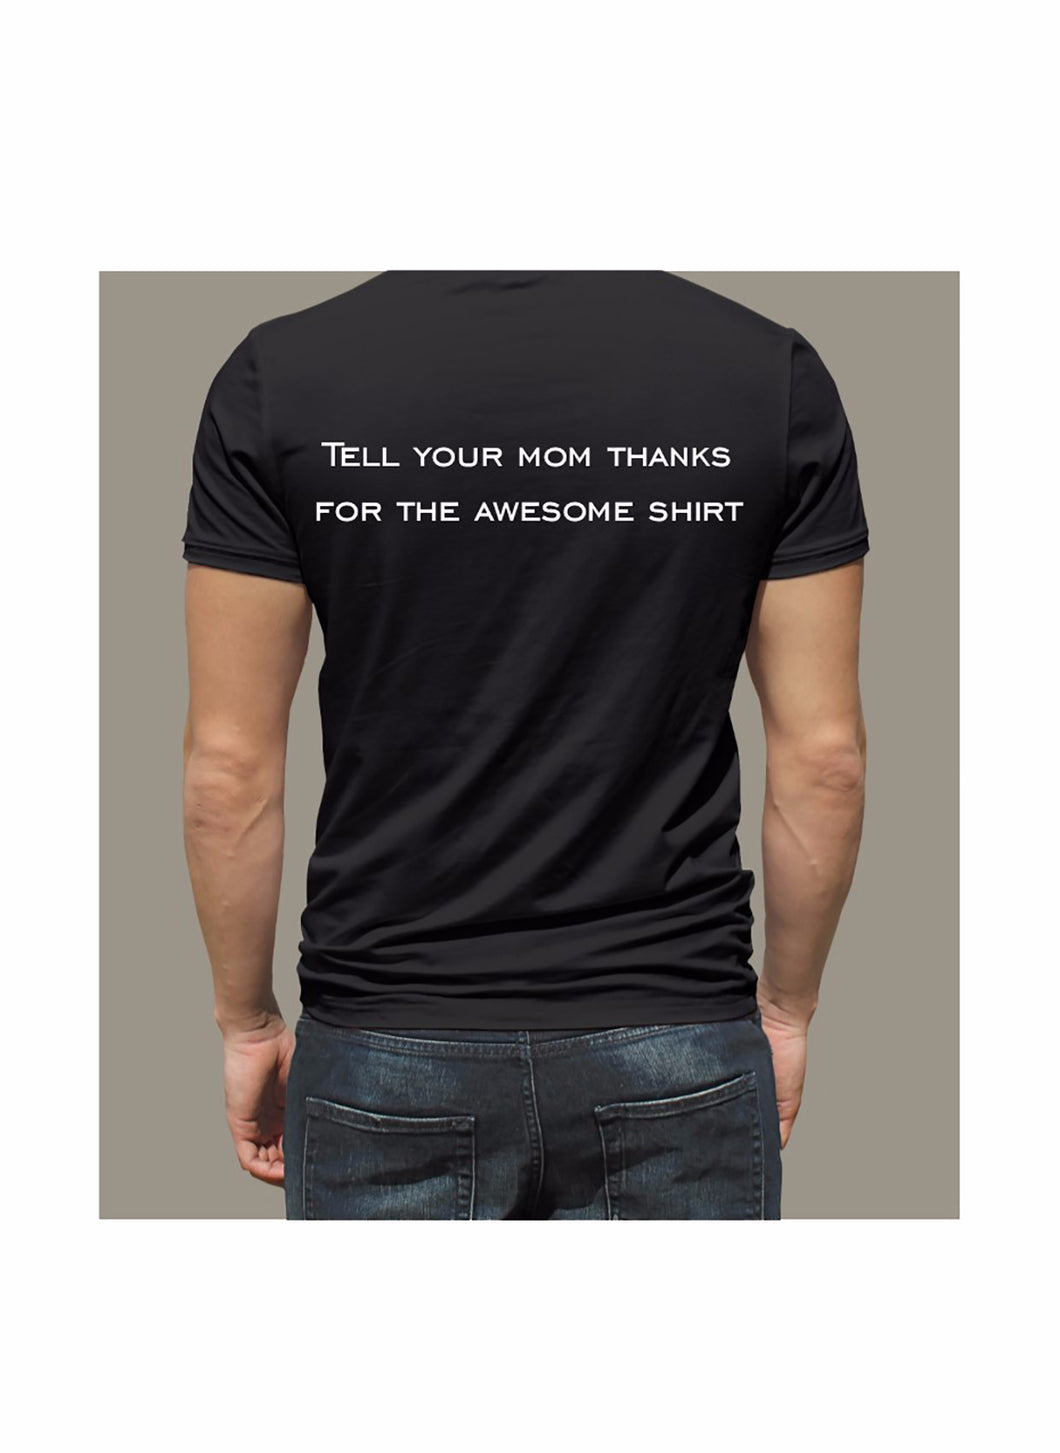 Men's Short Sleeved T-Shirt- Tell your mom thanks for the awesome shirt!